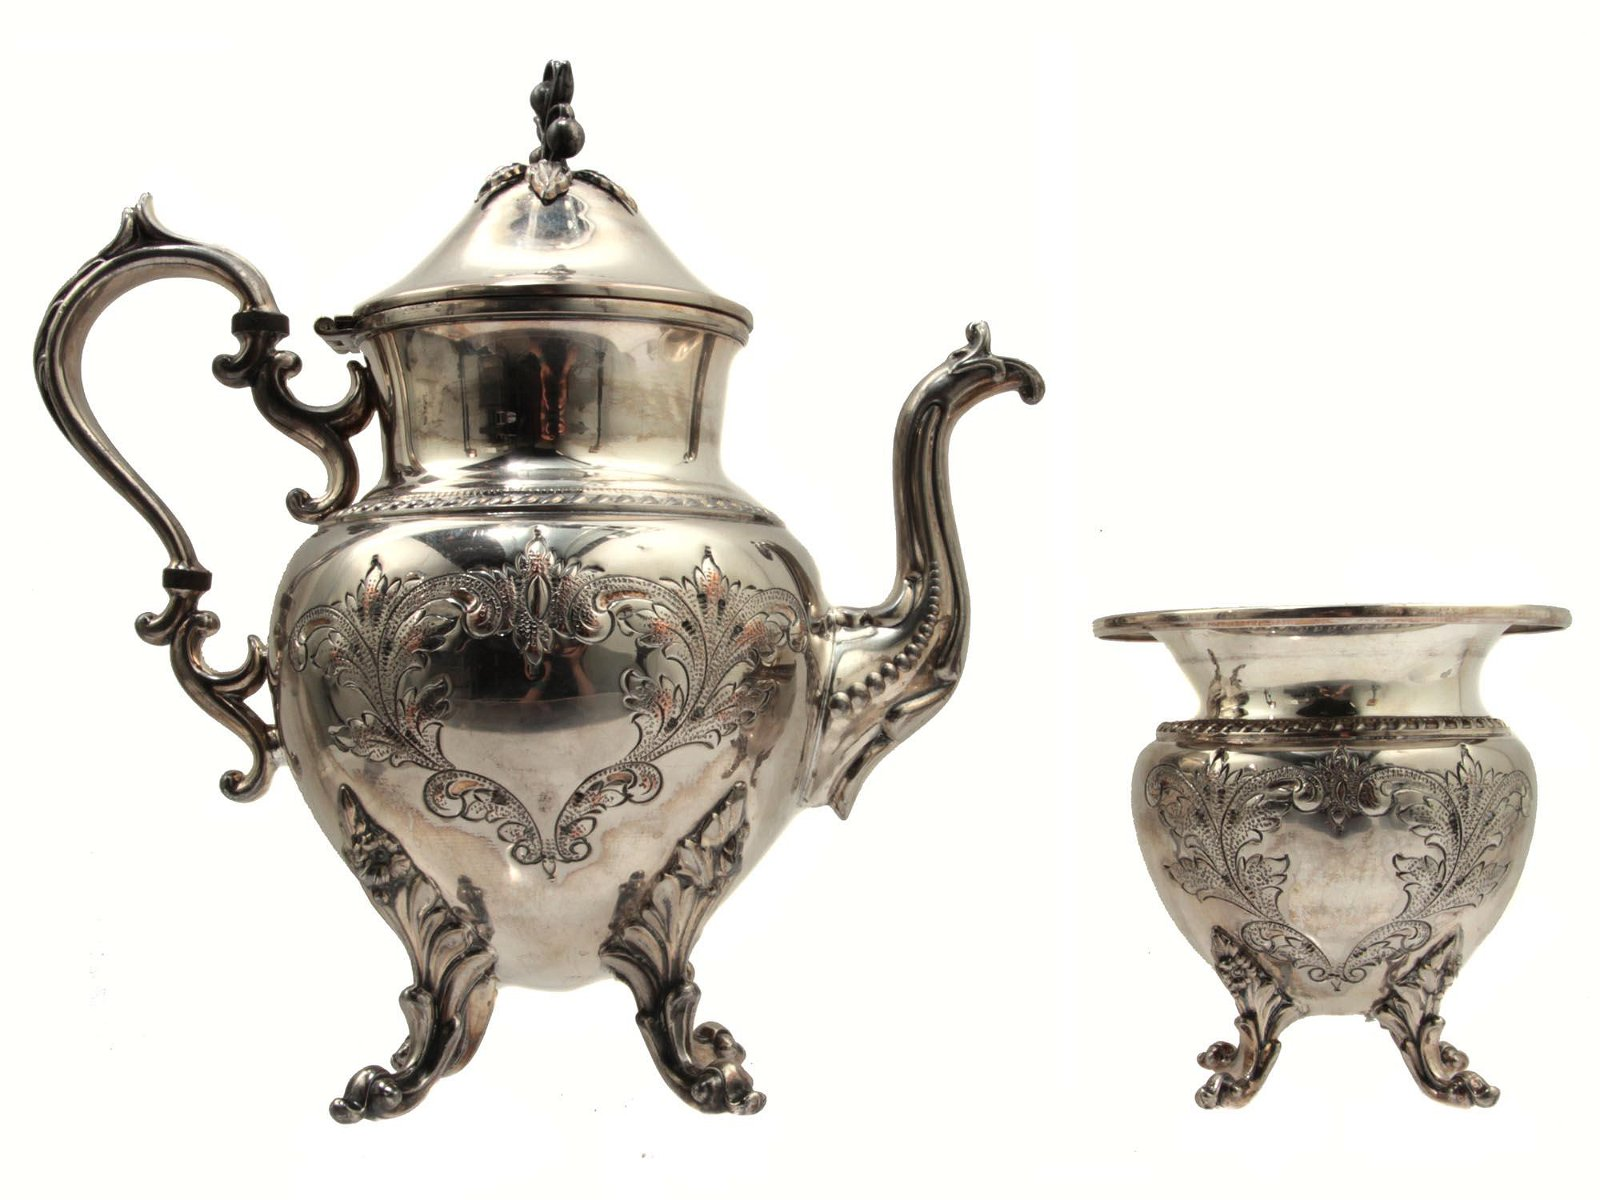 AN ENGLISH SILVER-PLATED COFFEE SET EARLY 20TH C